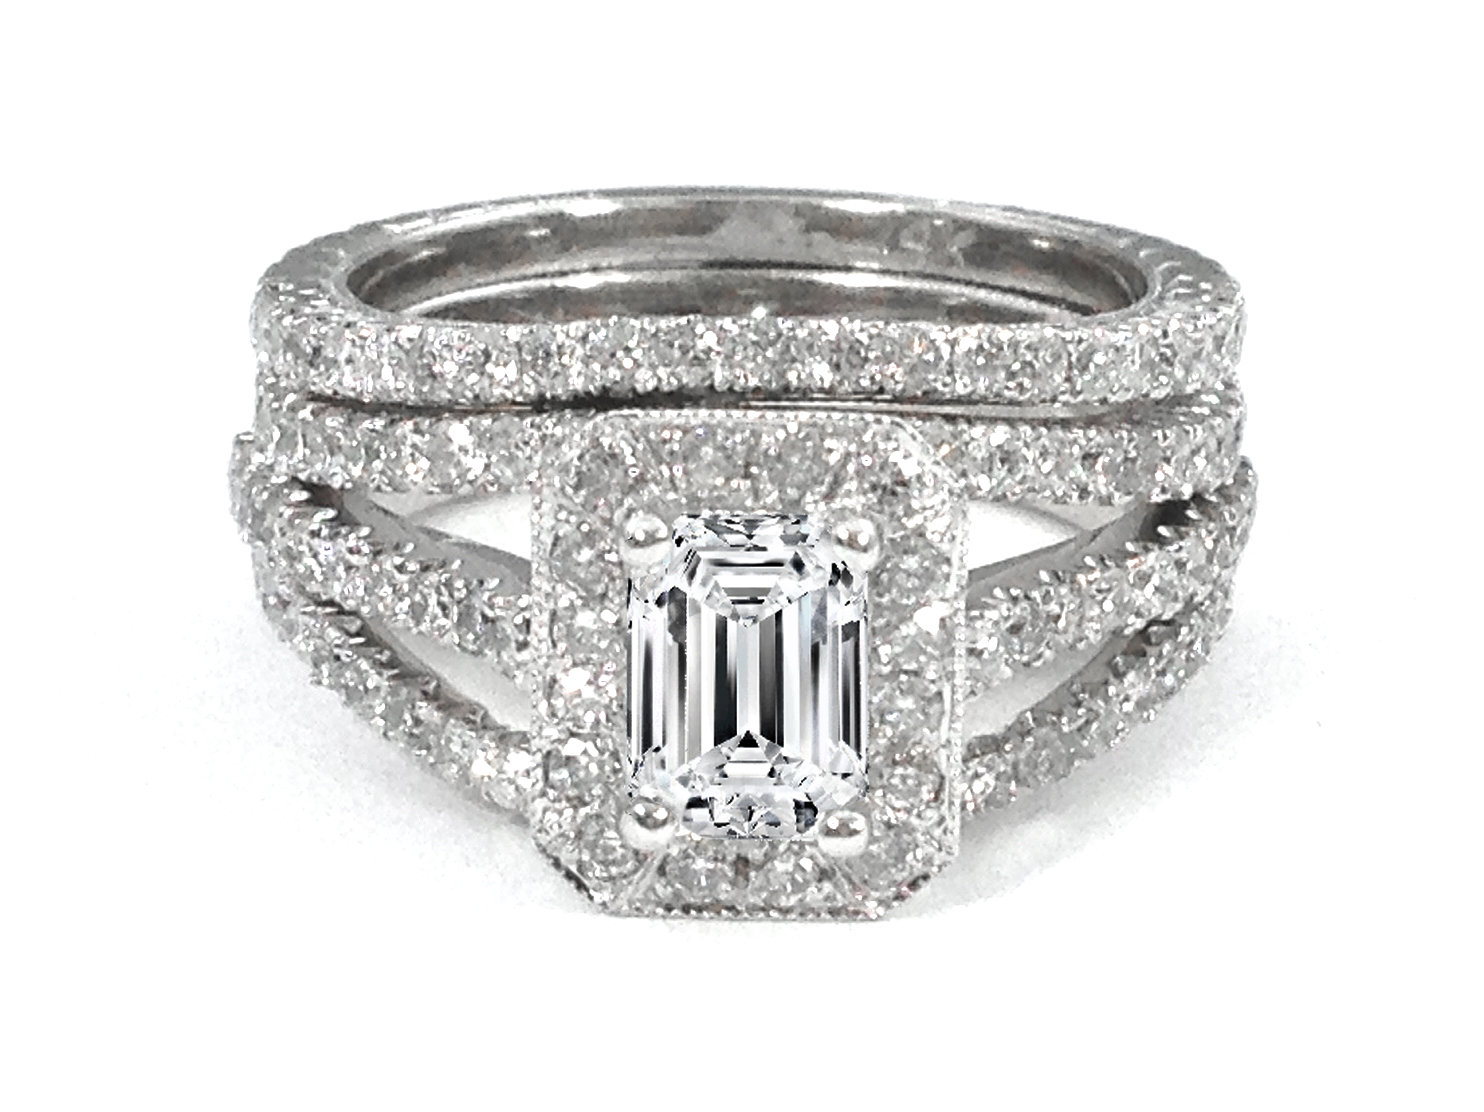 emerald engagement rings from mdc diamonds nyc. Black Bedroom Furniture Sets. Home Design Ideas